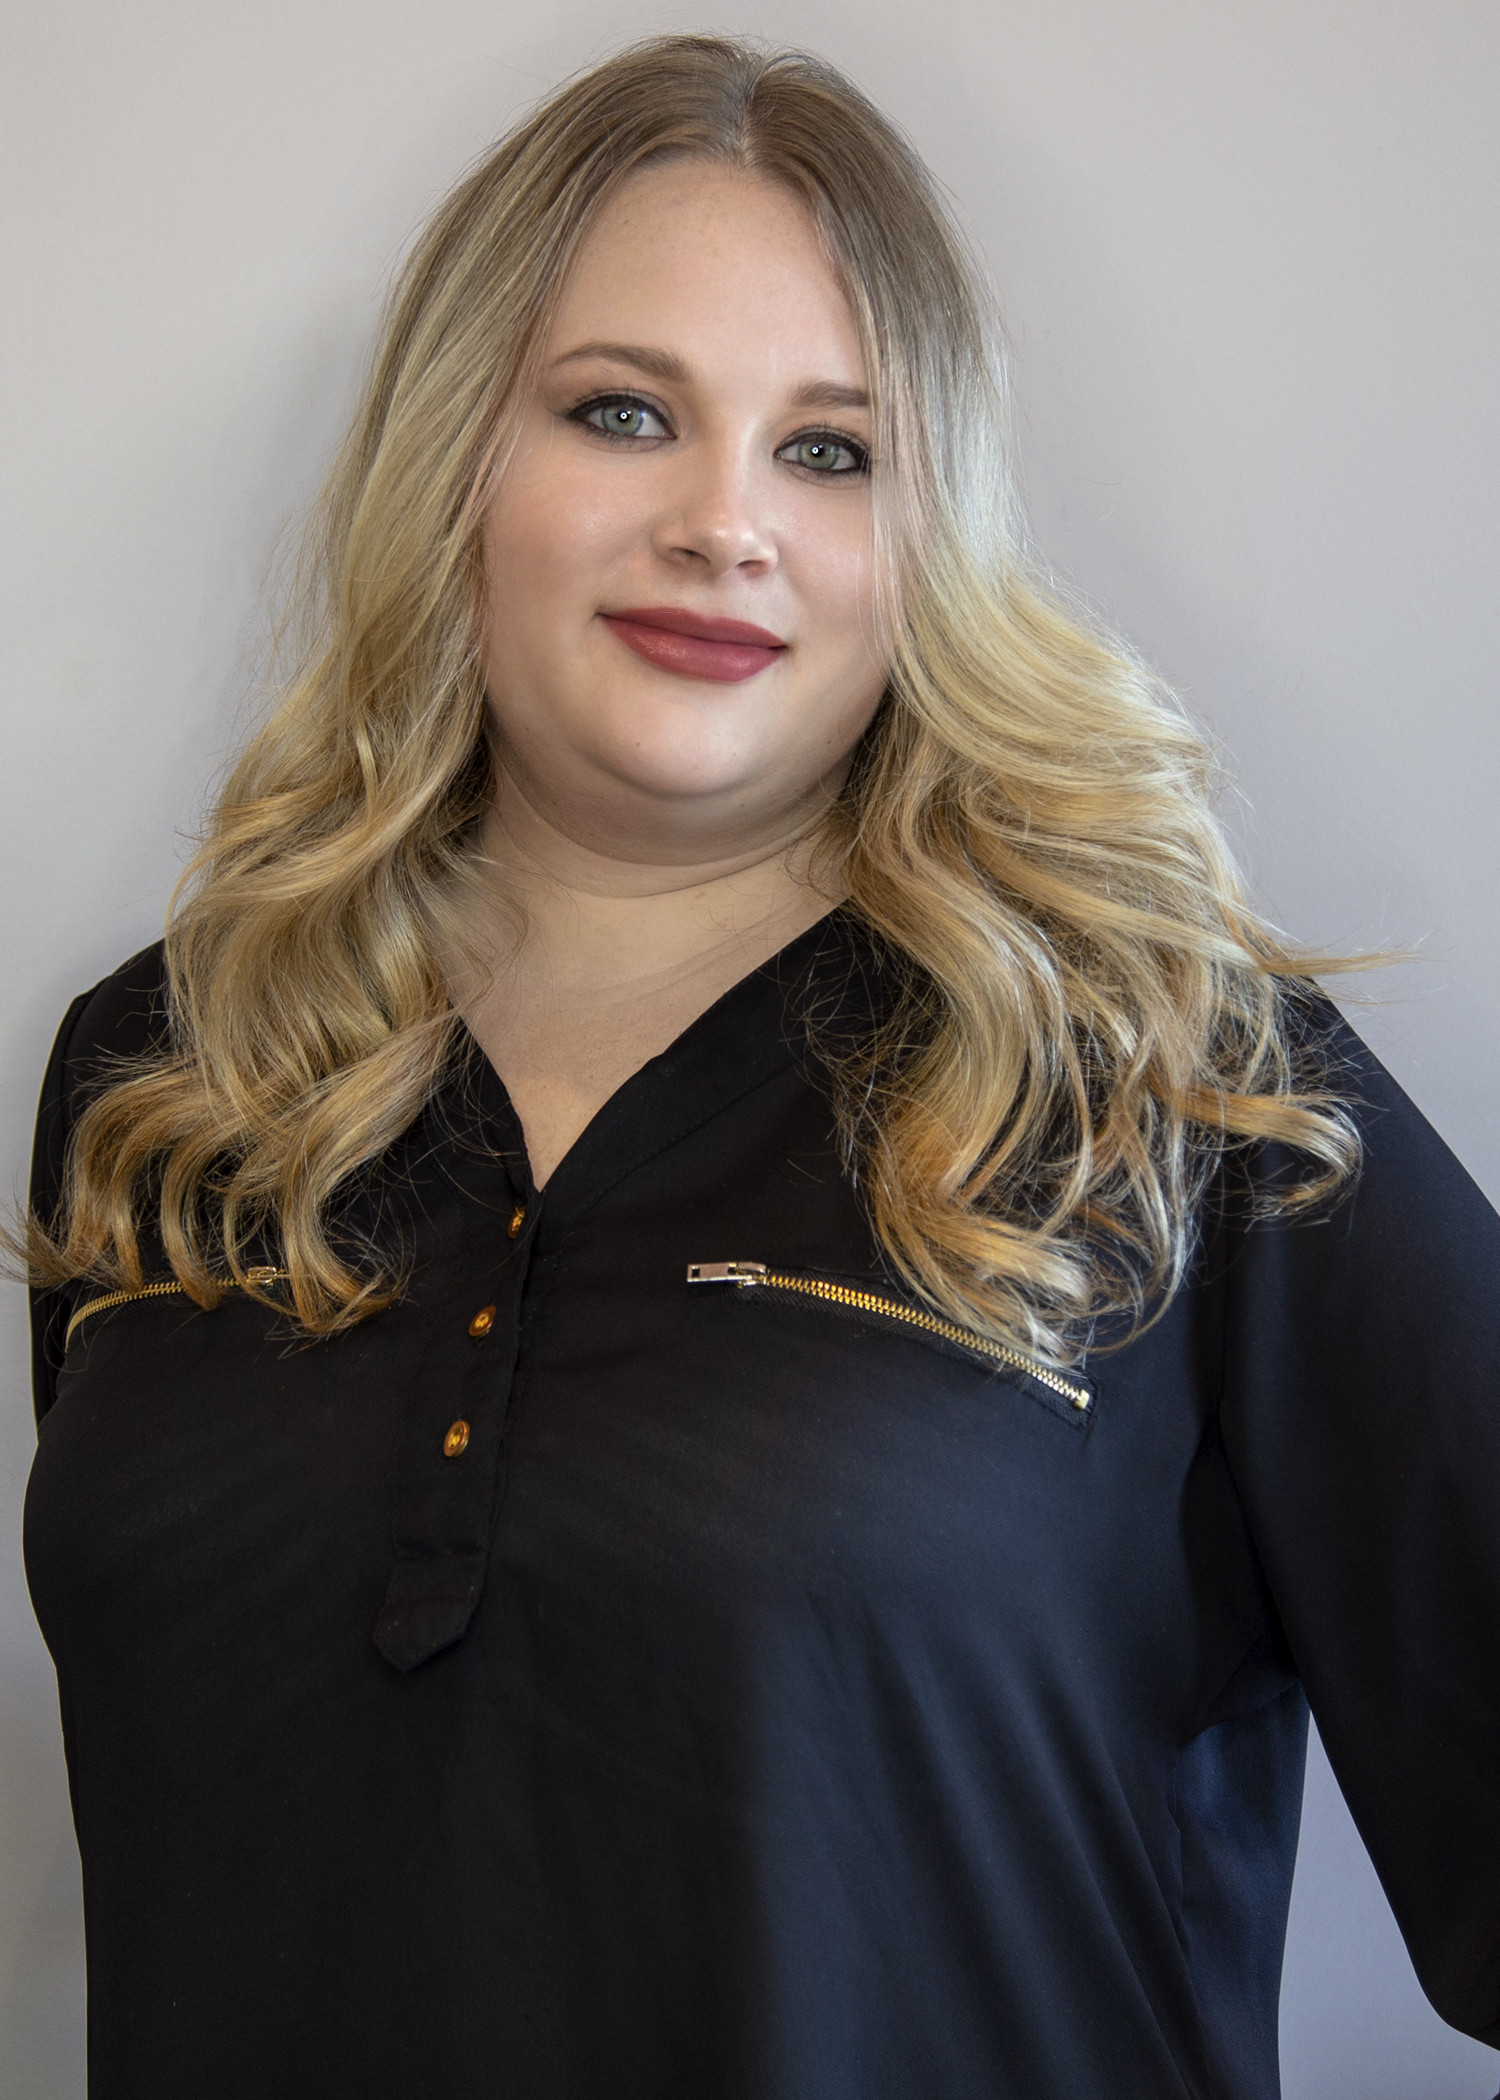 Samantha - Salon Brielle - Long Island Hair Salon